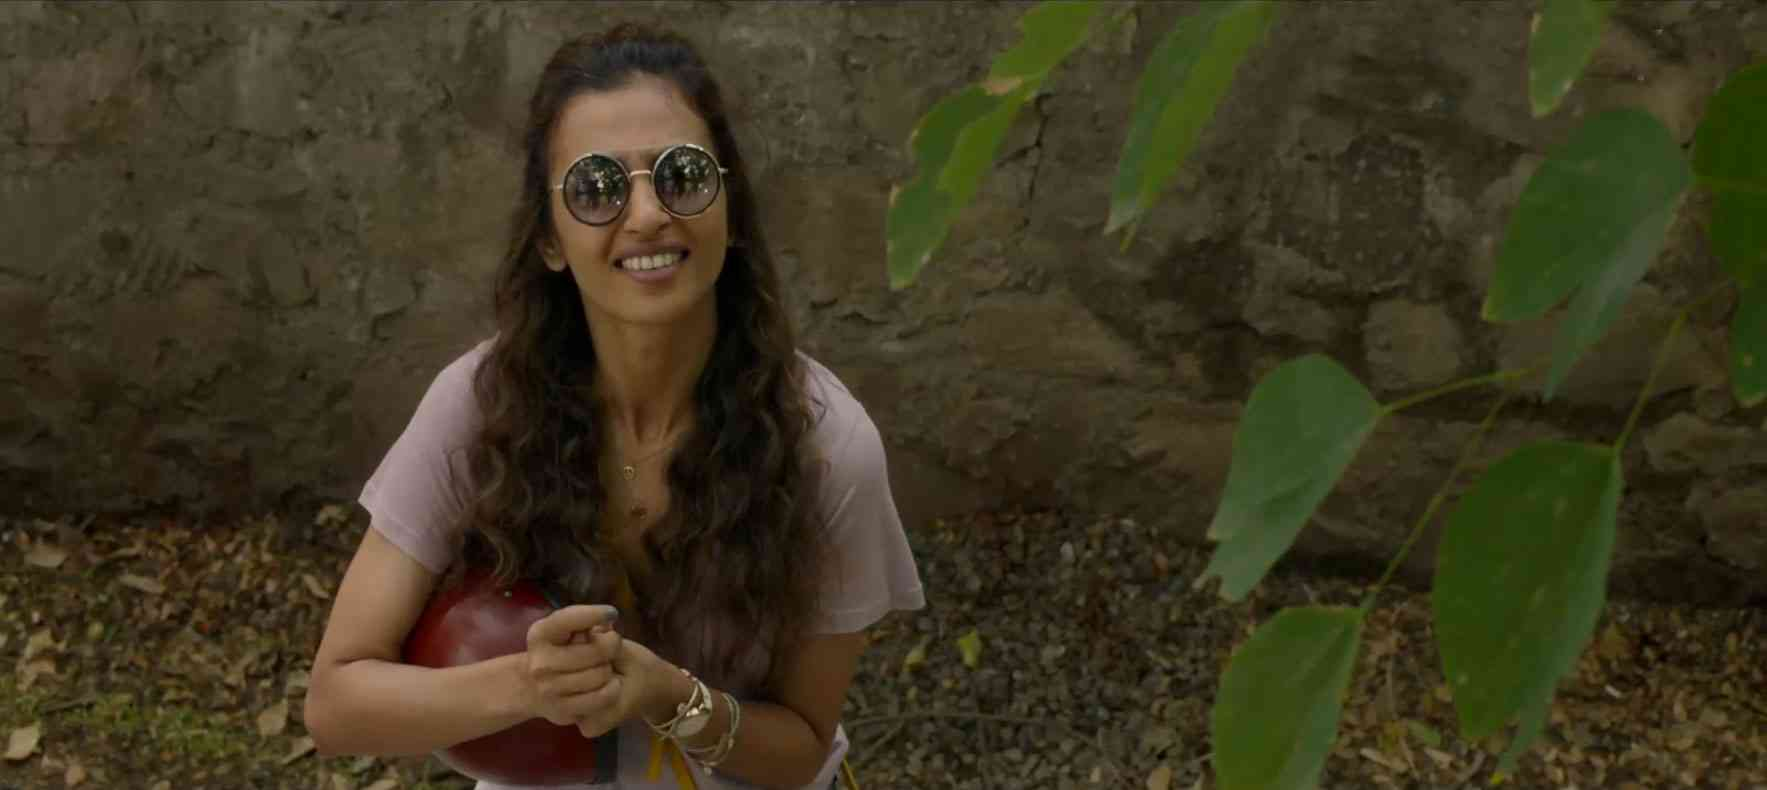 Radhika Apte in Andhadhun (2018). Courtesy Matchbox Pictures.